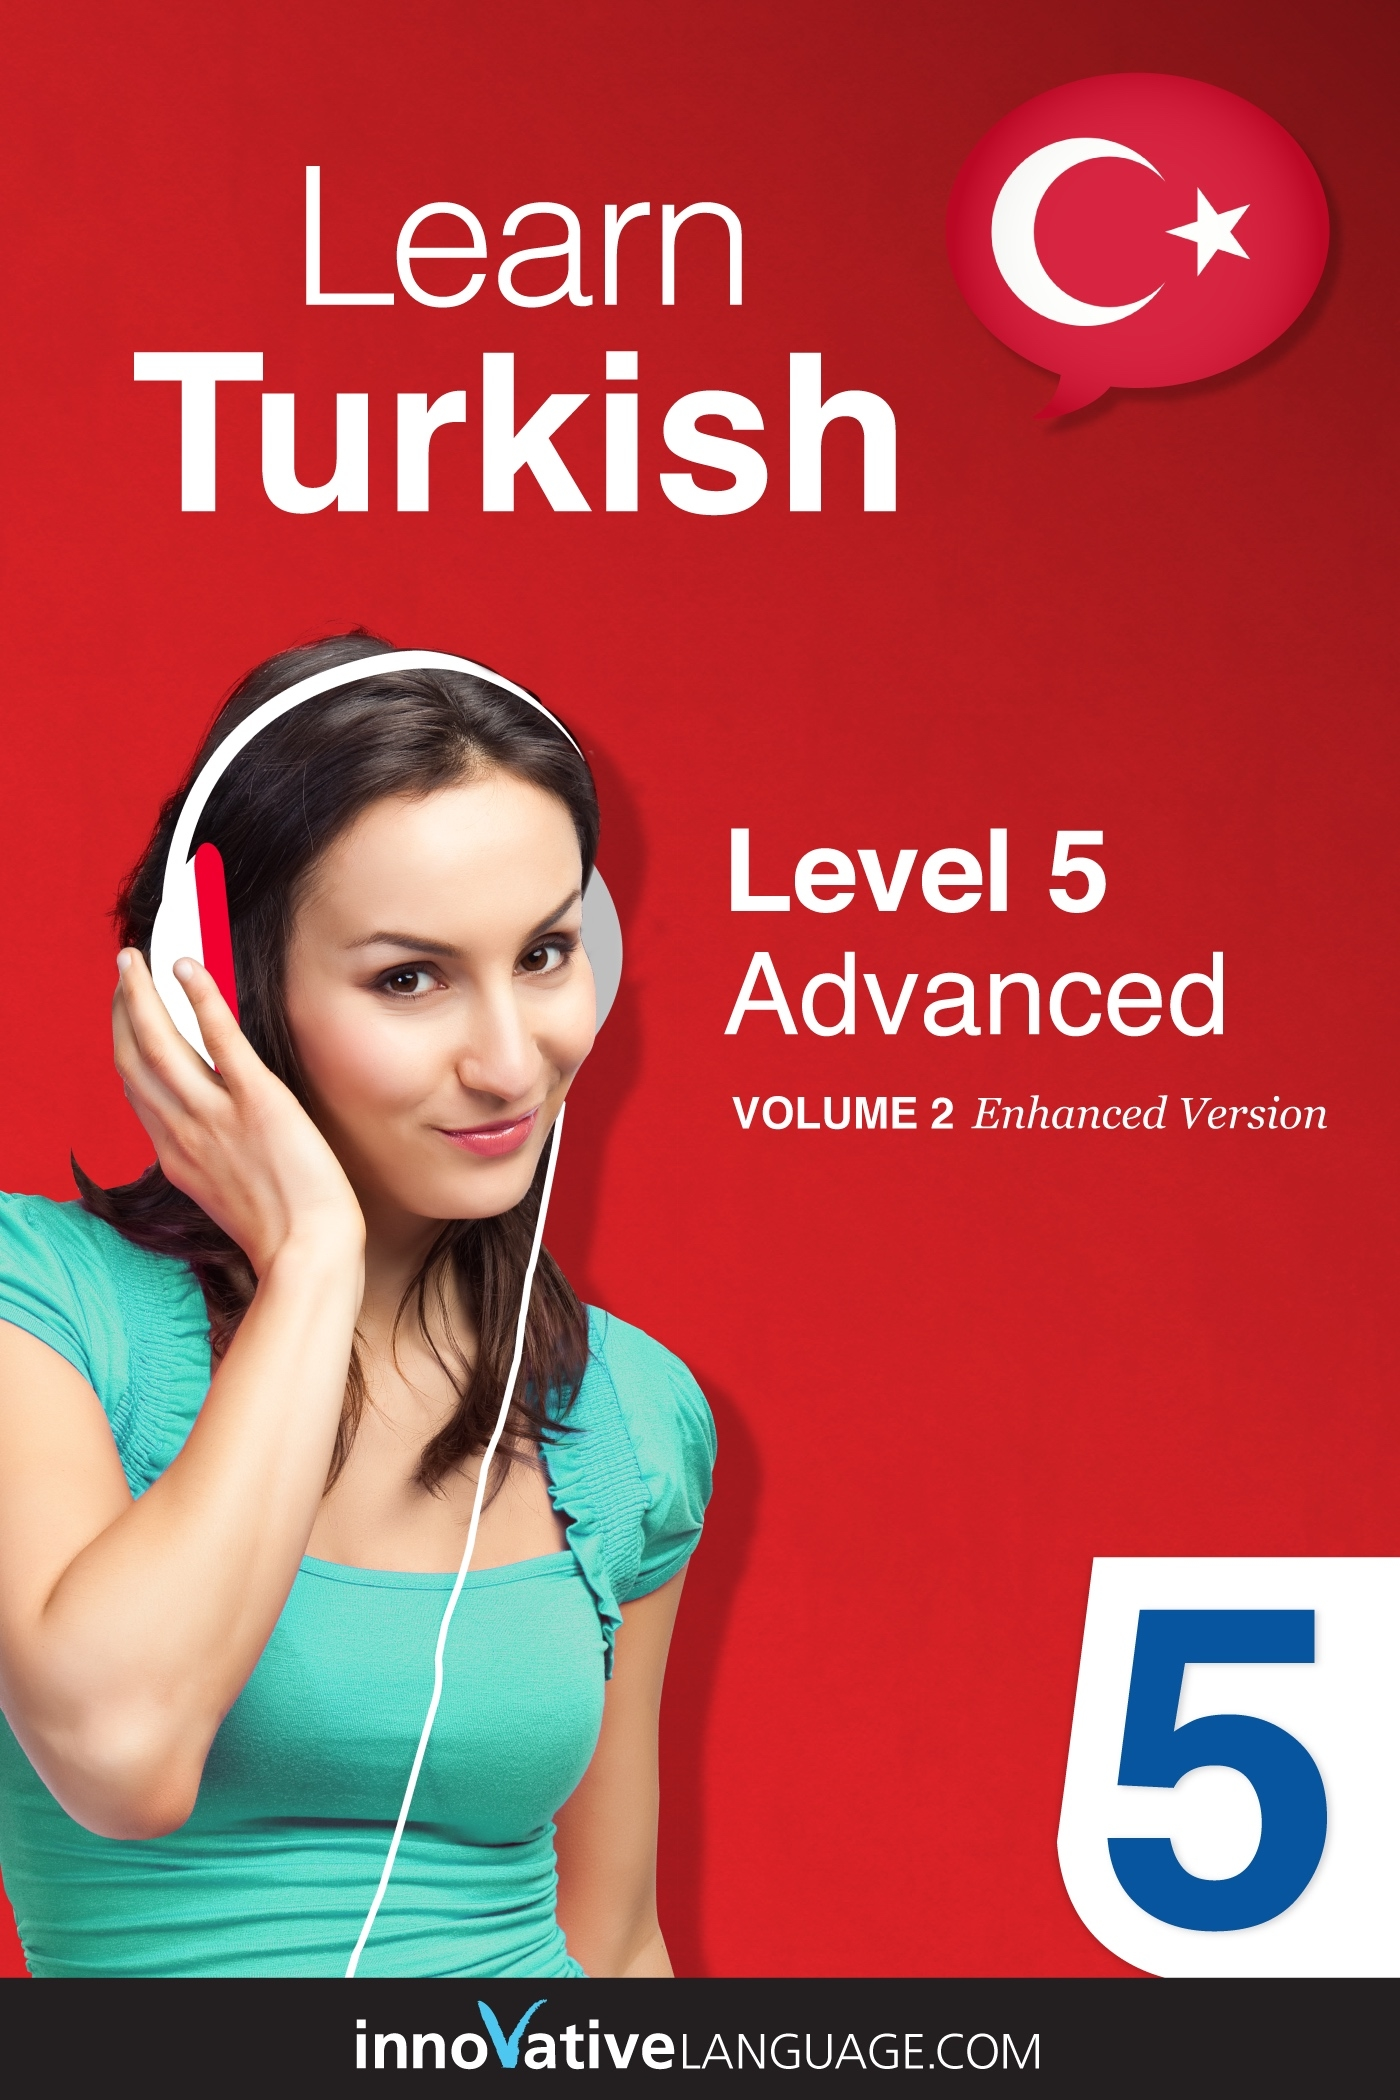 [eBook] Learn Turkish - Level 5: Advanced, Volume 2